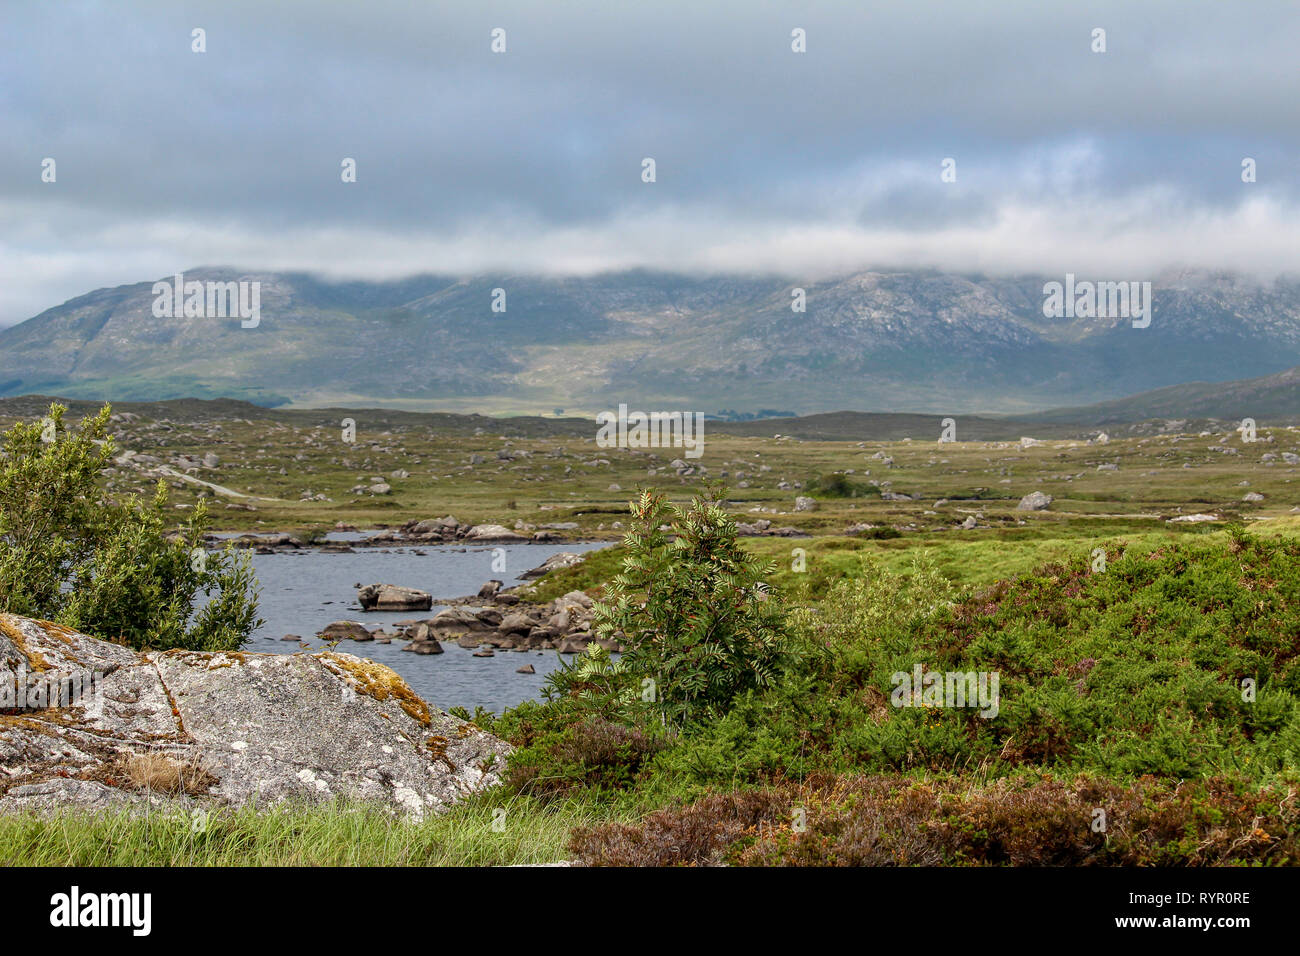 Landscape in Connemara National Park, County Galway, Ireland - Stock Image